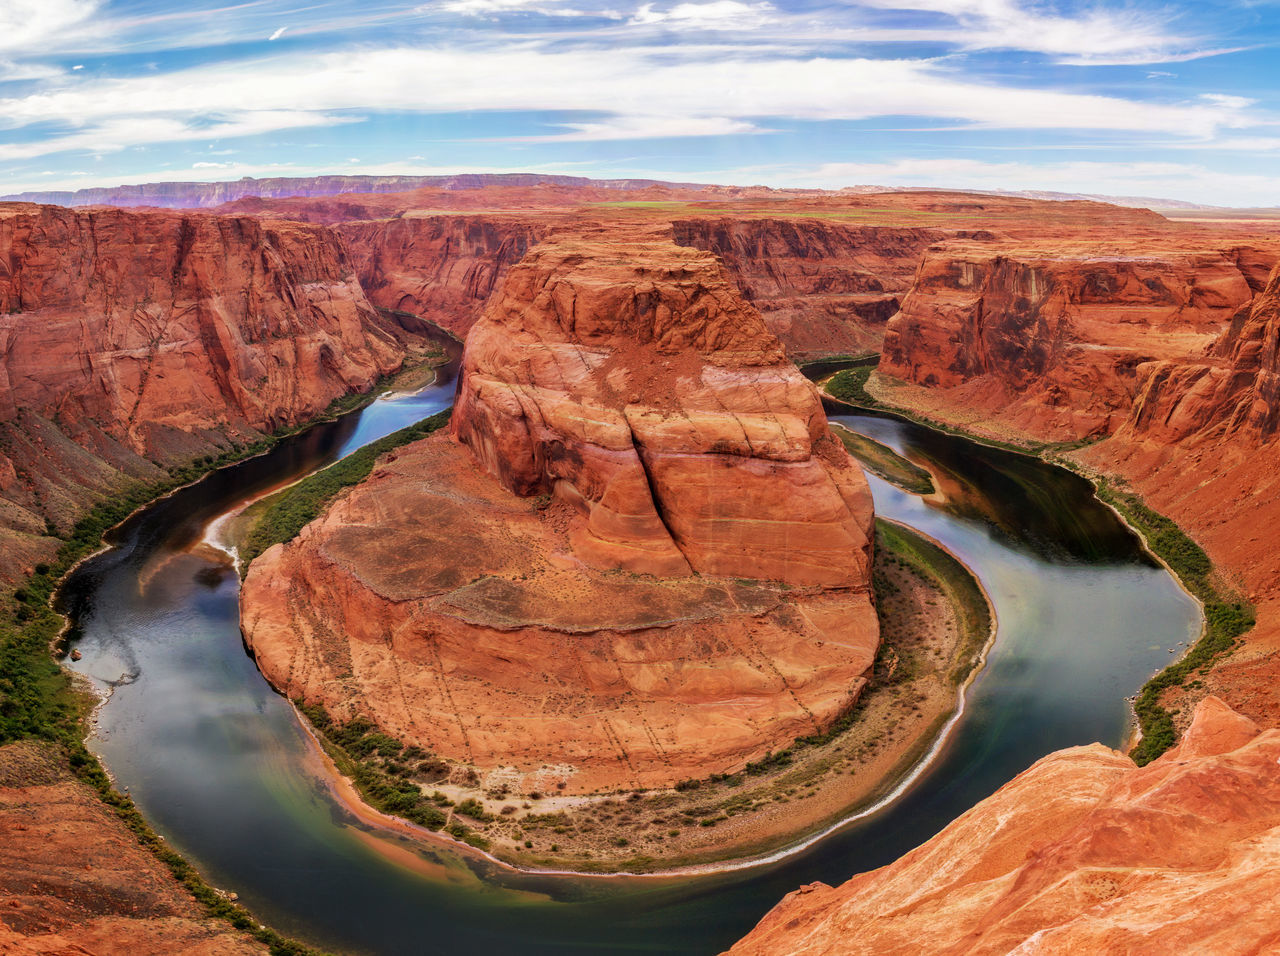 Arid Climate Beauty In Nature Canyon Cloud - Sky Day Desert Geology Horseshoe Bend Landscape Nature No People Outdoors Rock - Object Rock Formation Scenics Sky Topaz Glow Tourism Travel Travel Destinations Water Wilderness